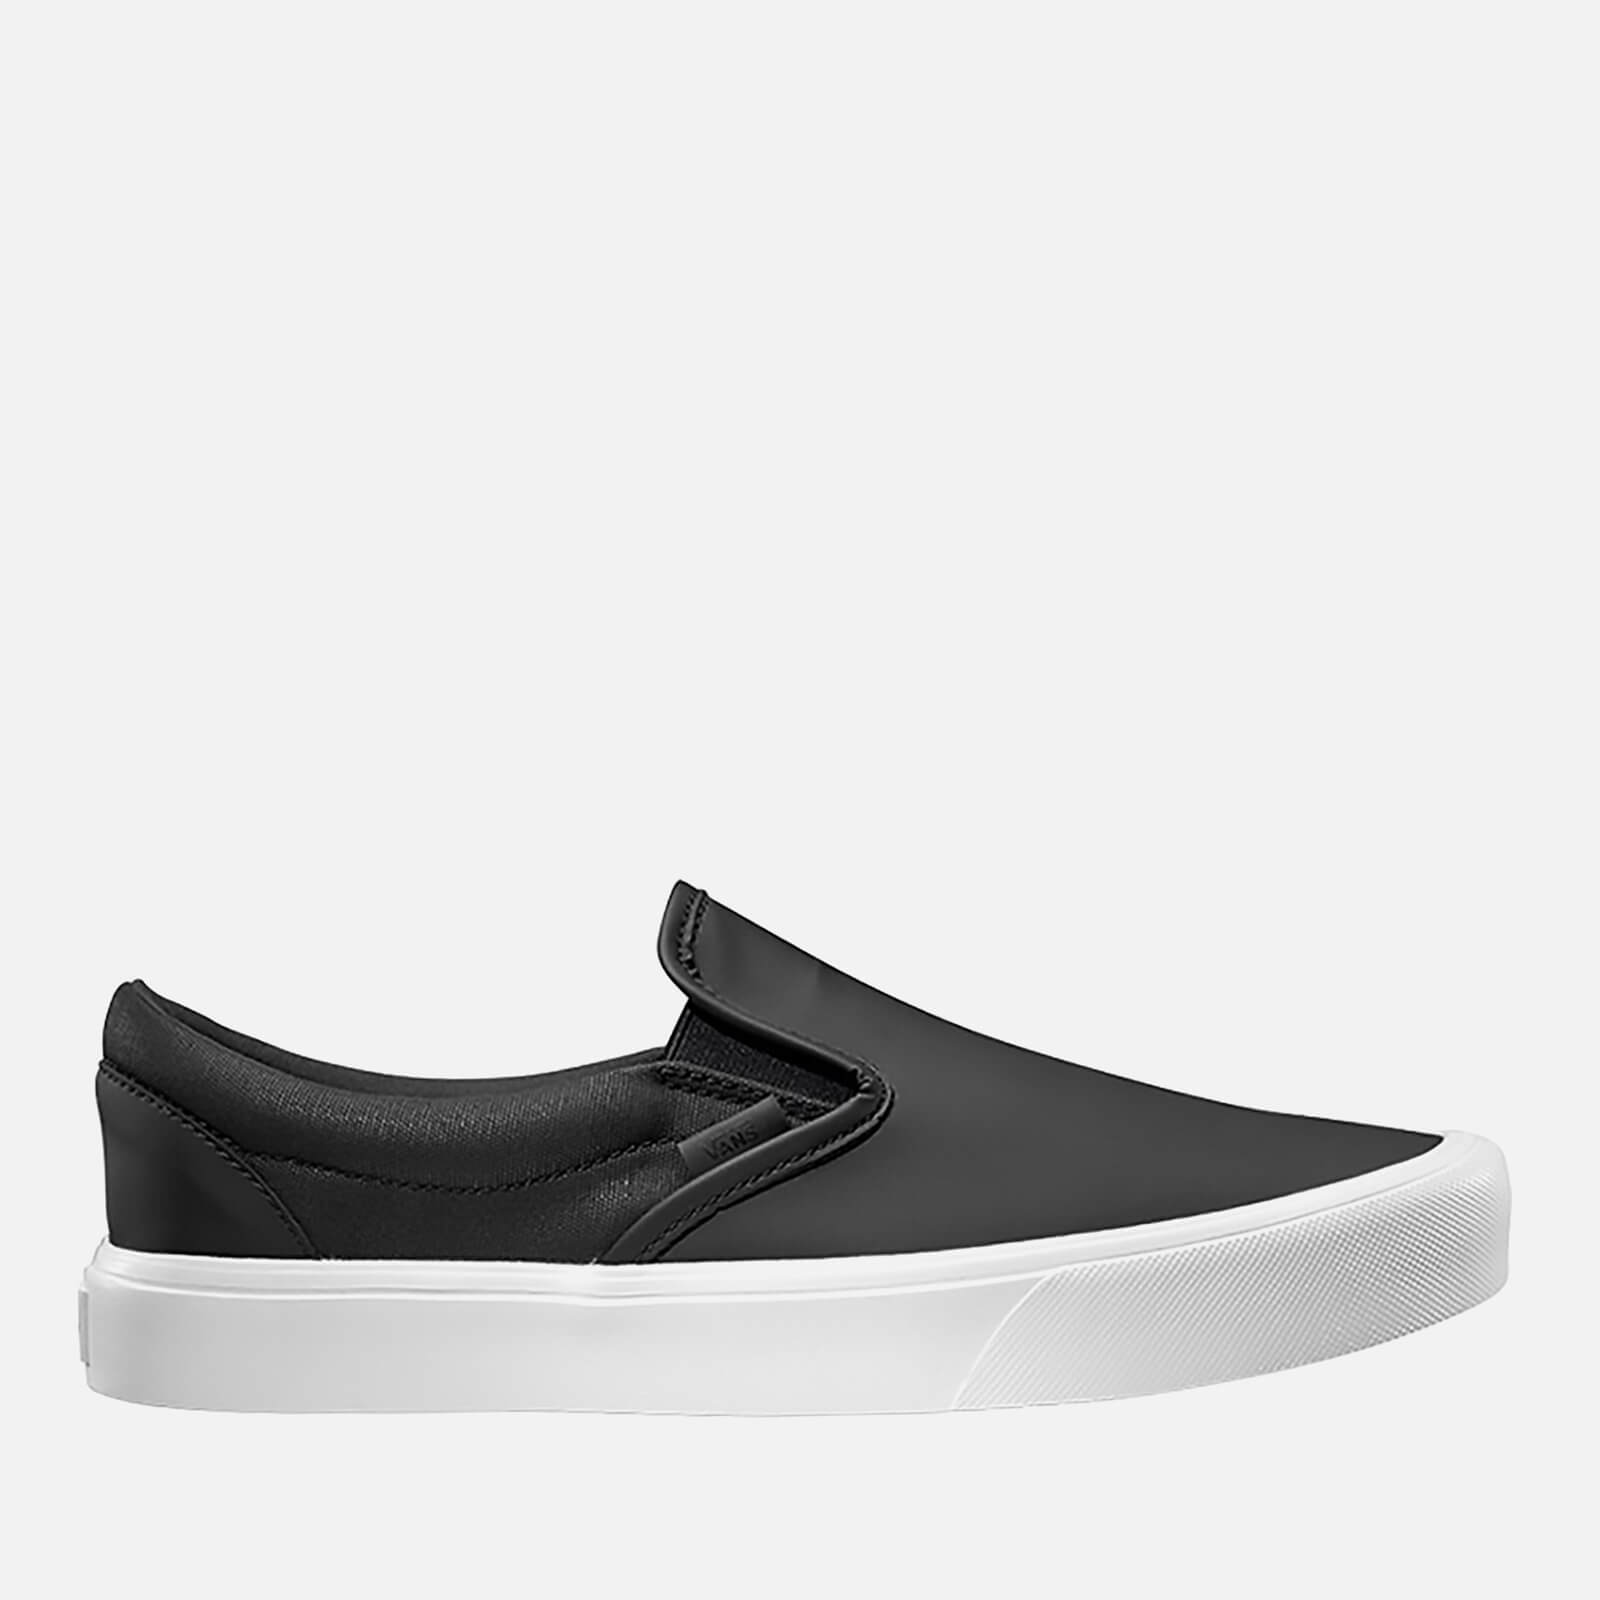 Vans X Rains Men s Slip-On Lite Trainers - Black True White - Free UK  Delivery over £50 6696c12f7